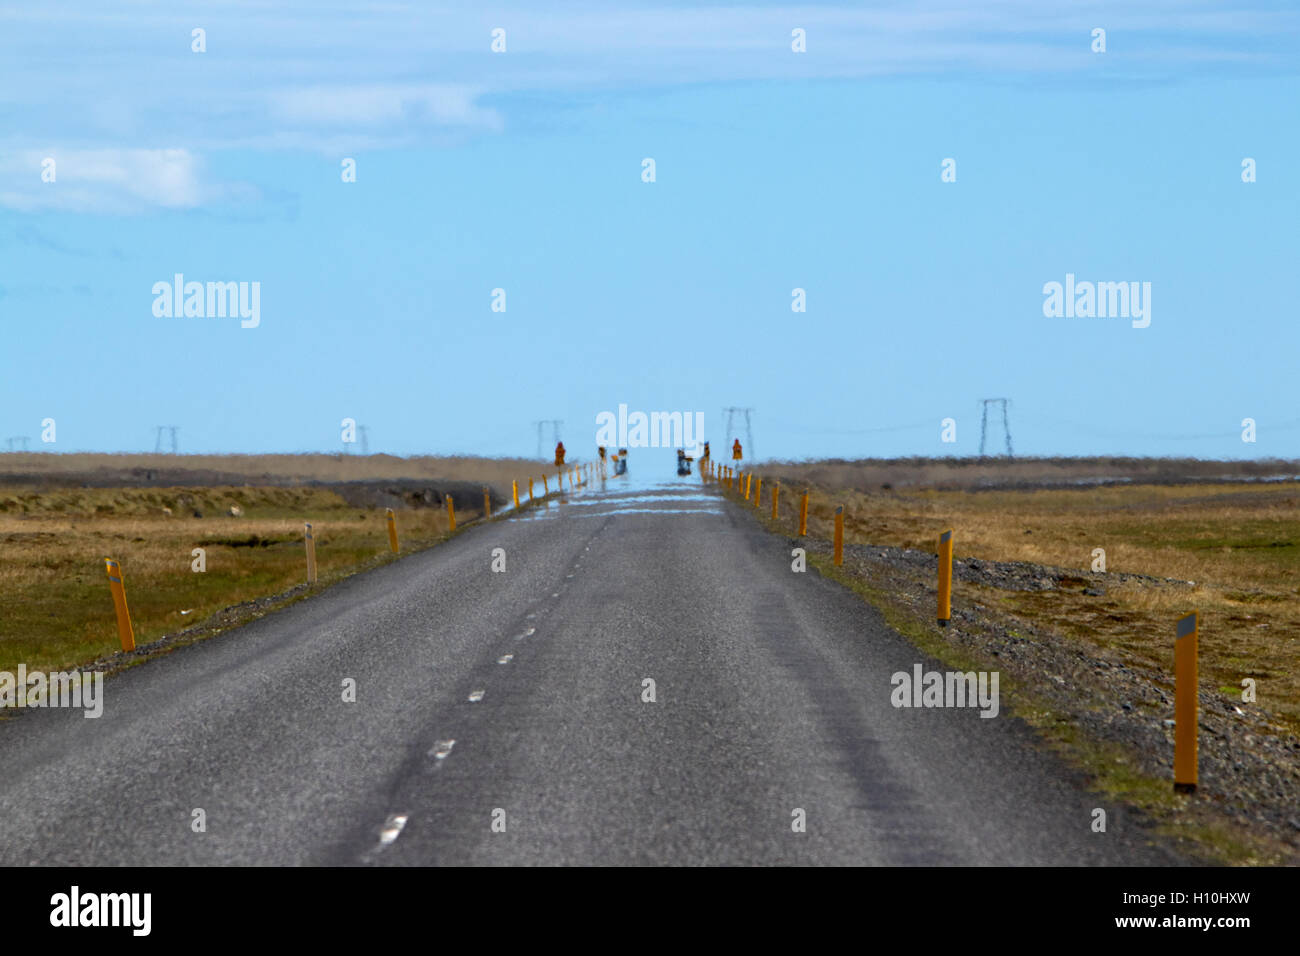 heat haze on route 1 ringroad through the lava fields of southern Iceland - Stock Image